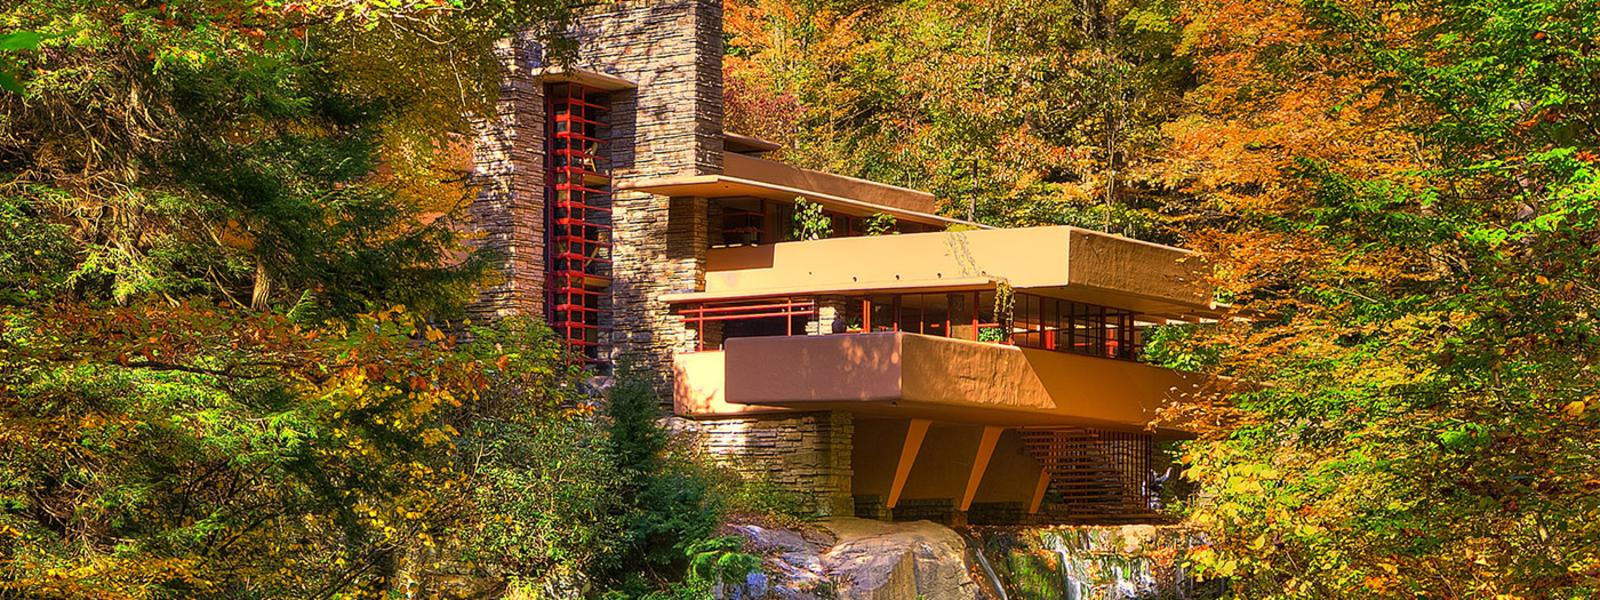 Laurel Highlands, PA Frank Lloyd Wright | Fallingwater Tours